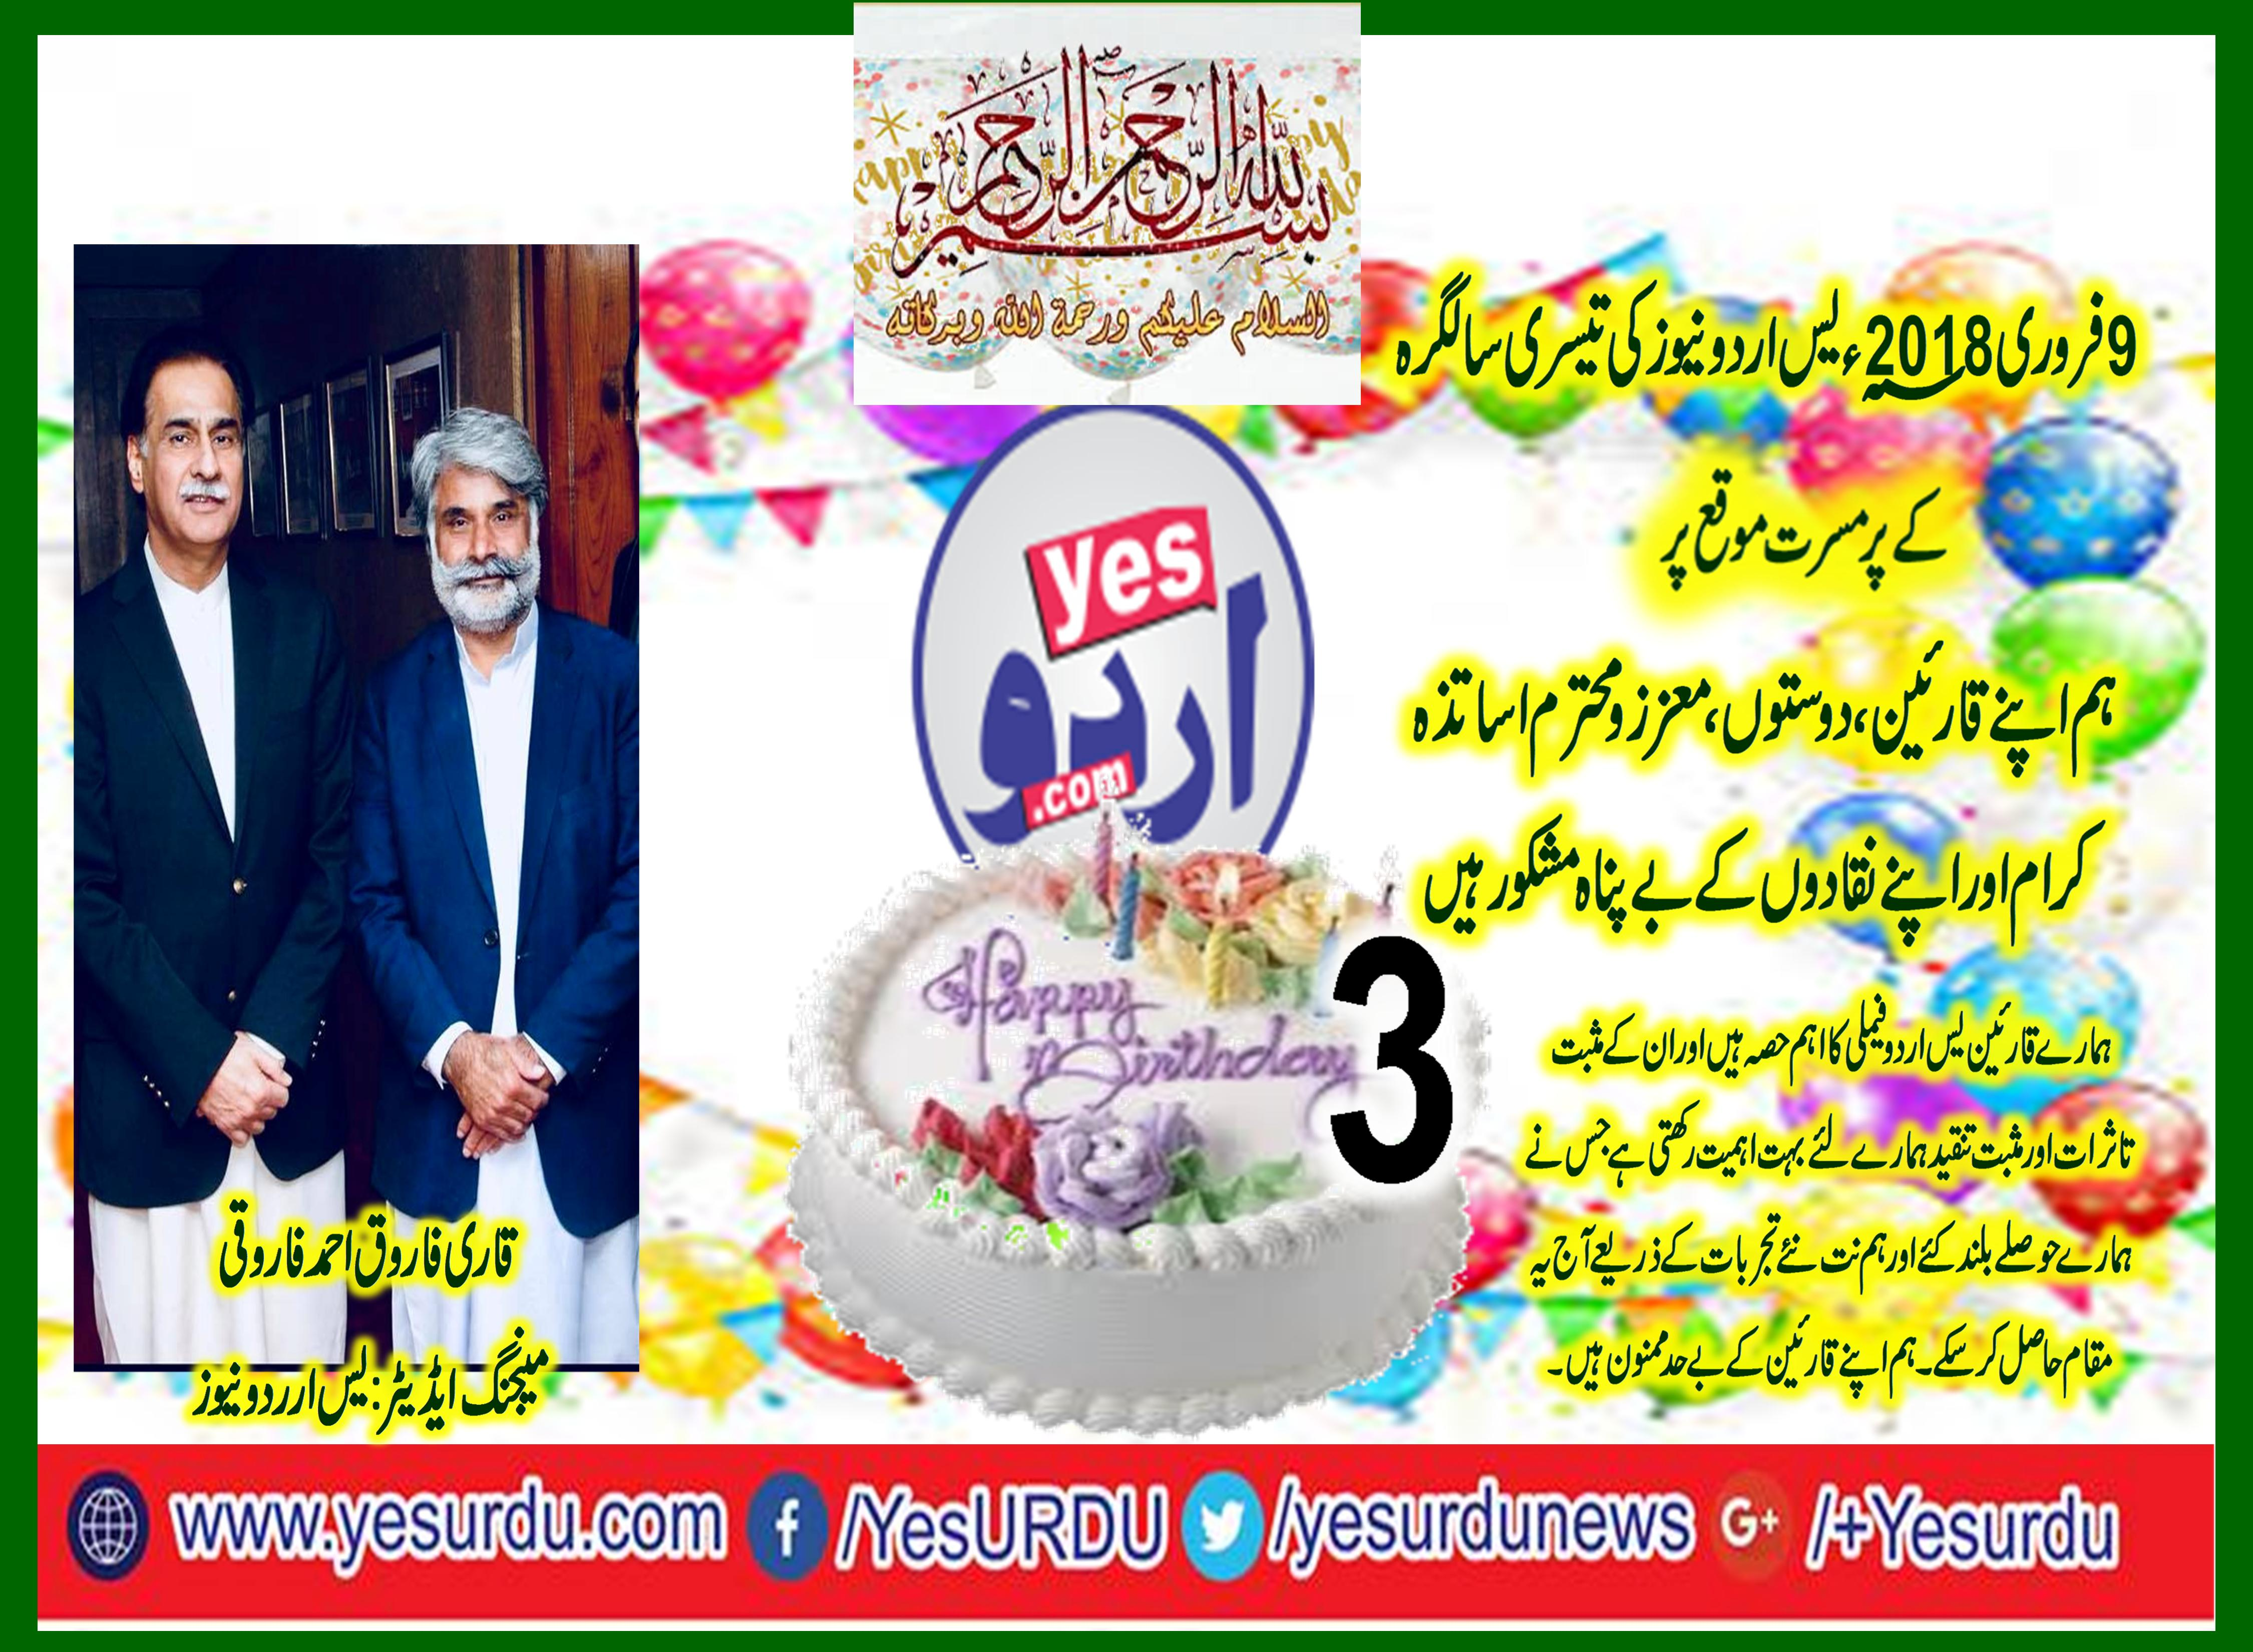 THIRD, BIRTHDAY, OF, YES URDU, NEWS, QARI FAROOQ AHMED, MANAGING, EDITOR, SENT, THE, MESSAGE, TO, READERS, AND, STAFF, OF, YES URDU, NEWS, ON, GREAT, DEDICATION, AND, HARD, WORK